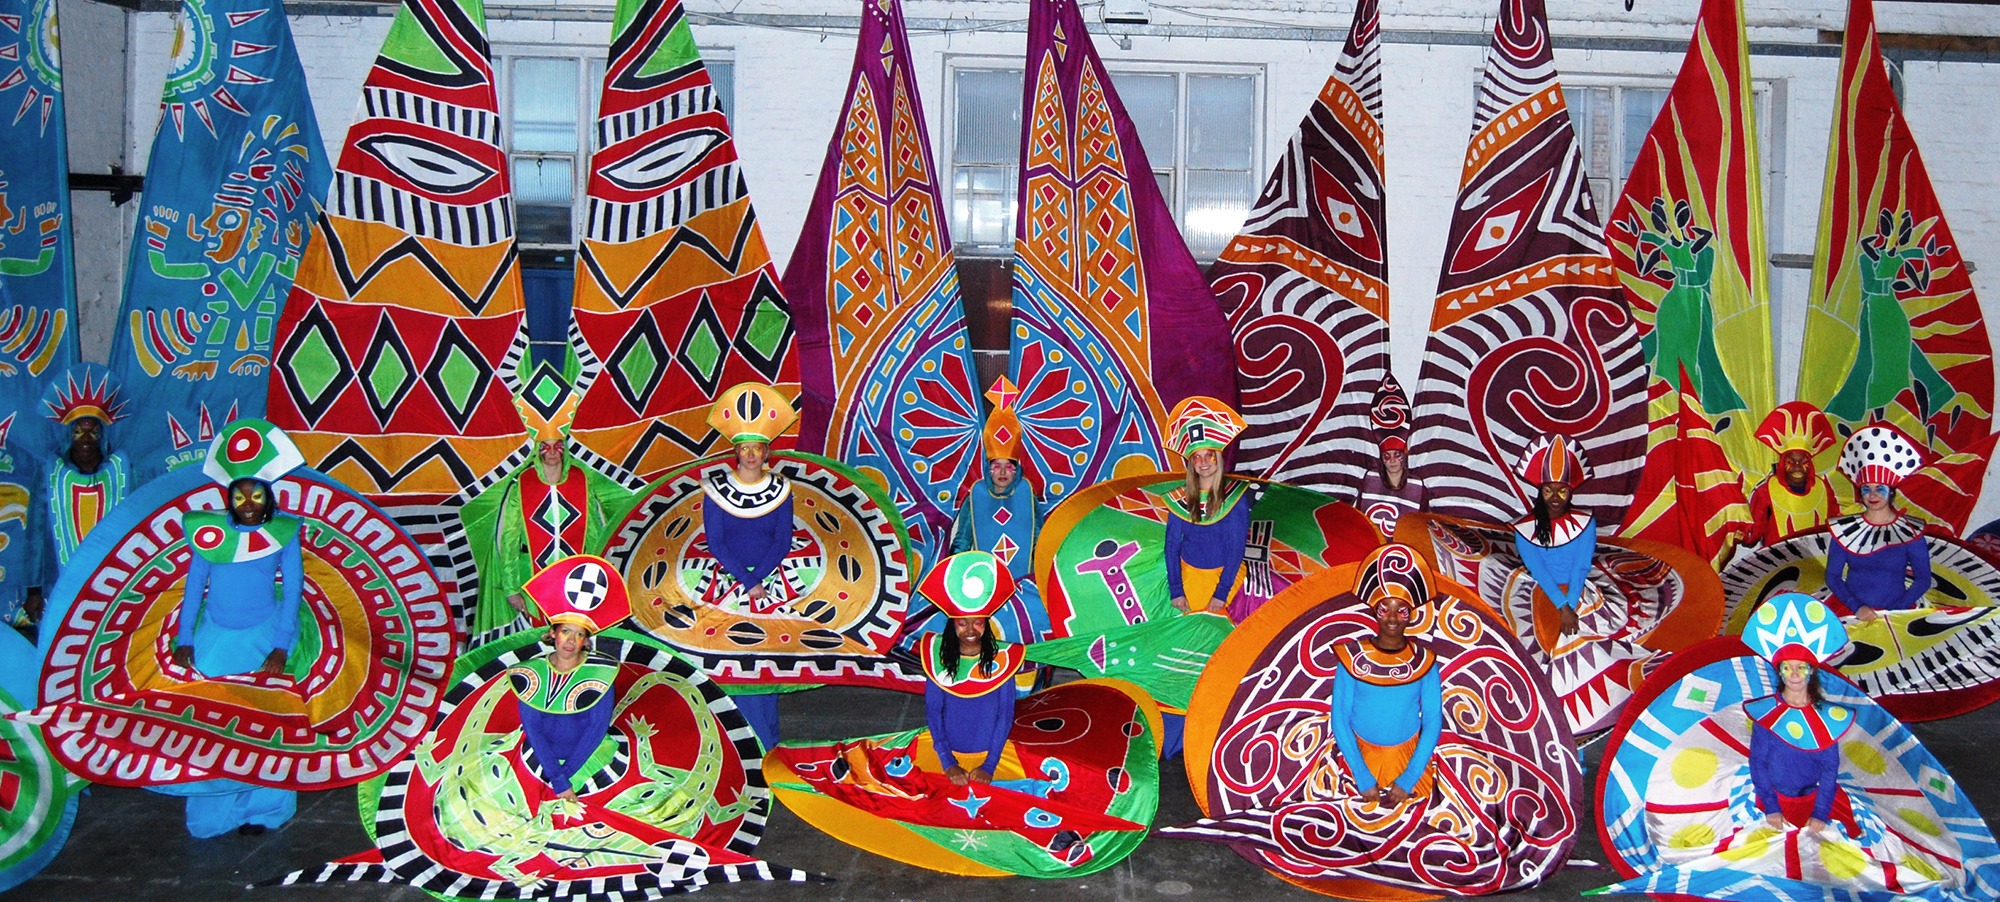 A group of people wearing large colourful silk carnival costumes